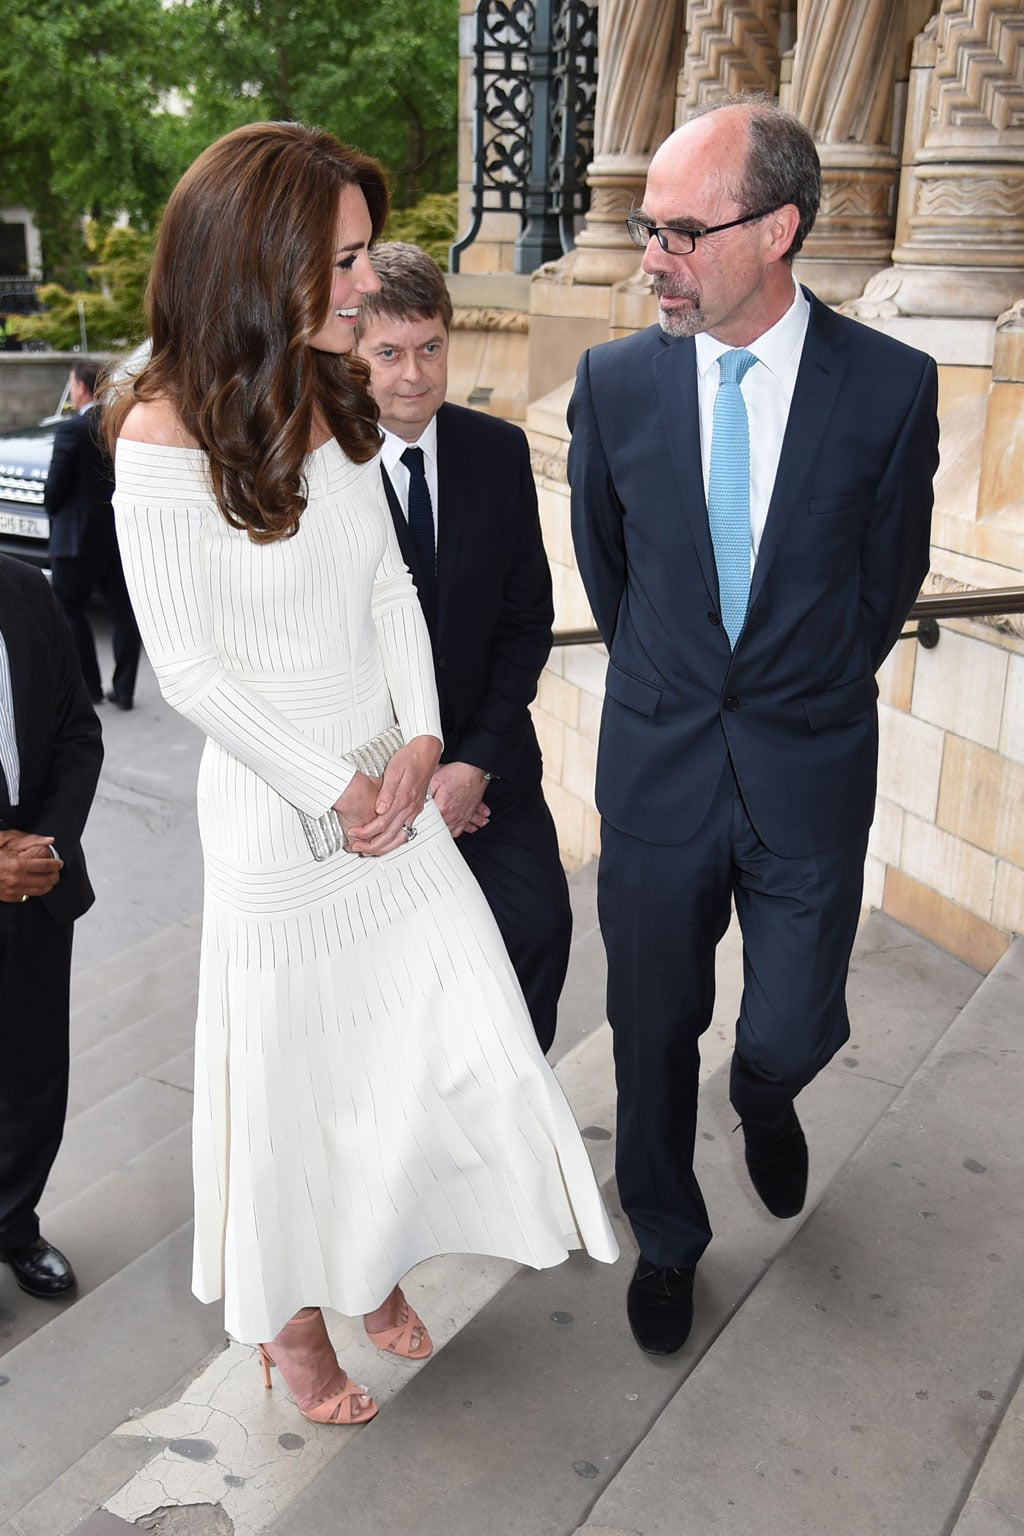 HRH The Duchess of Cambridge greets Art Fund director, Stephen Deuchar, at the Museum of the Year ceremony